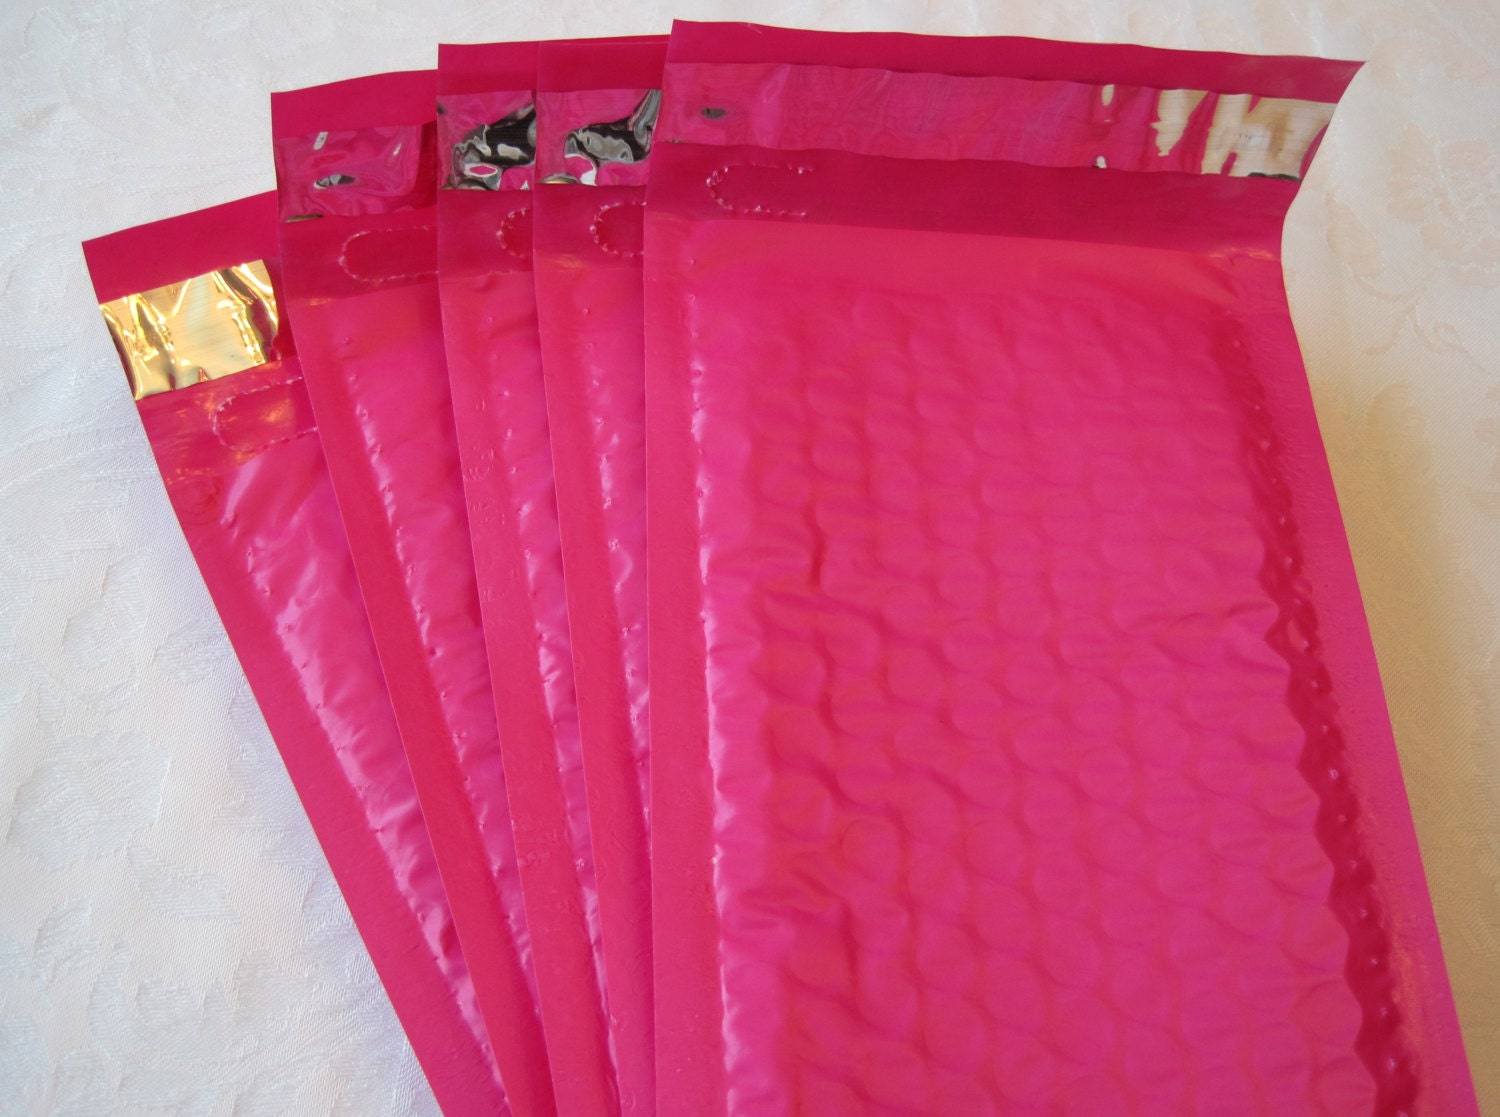 10 Hot Pink Bubble Mailers Padded Envelopes Shipping by JetJewels